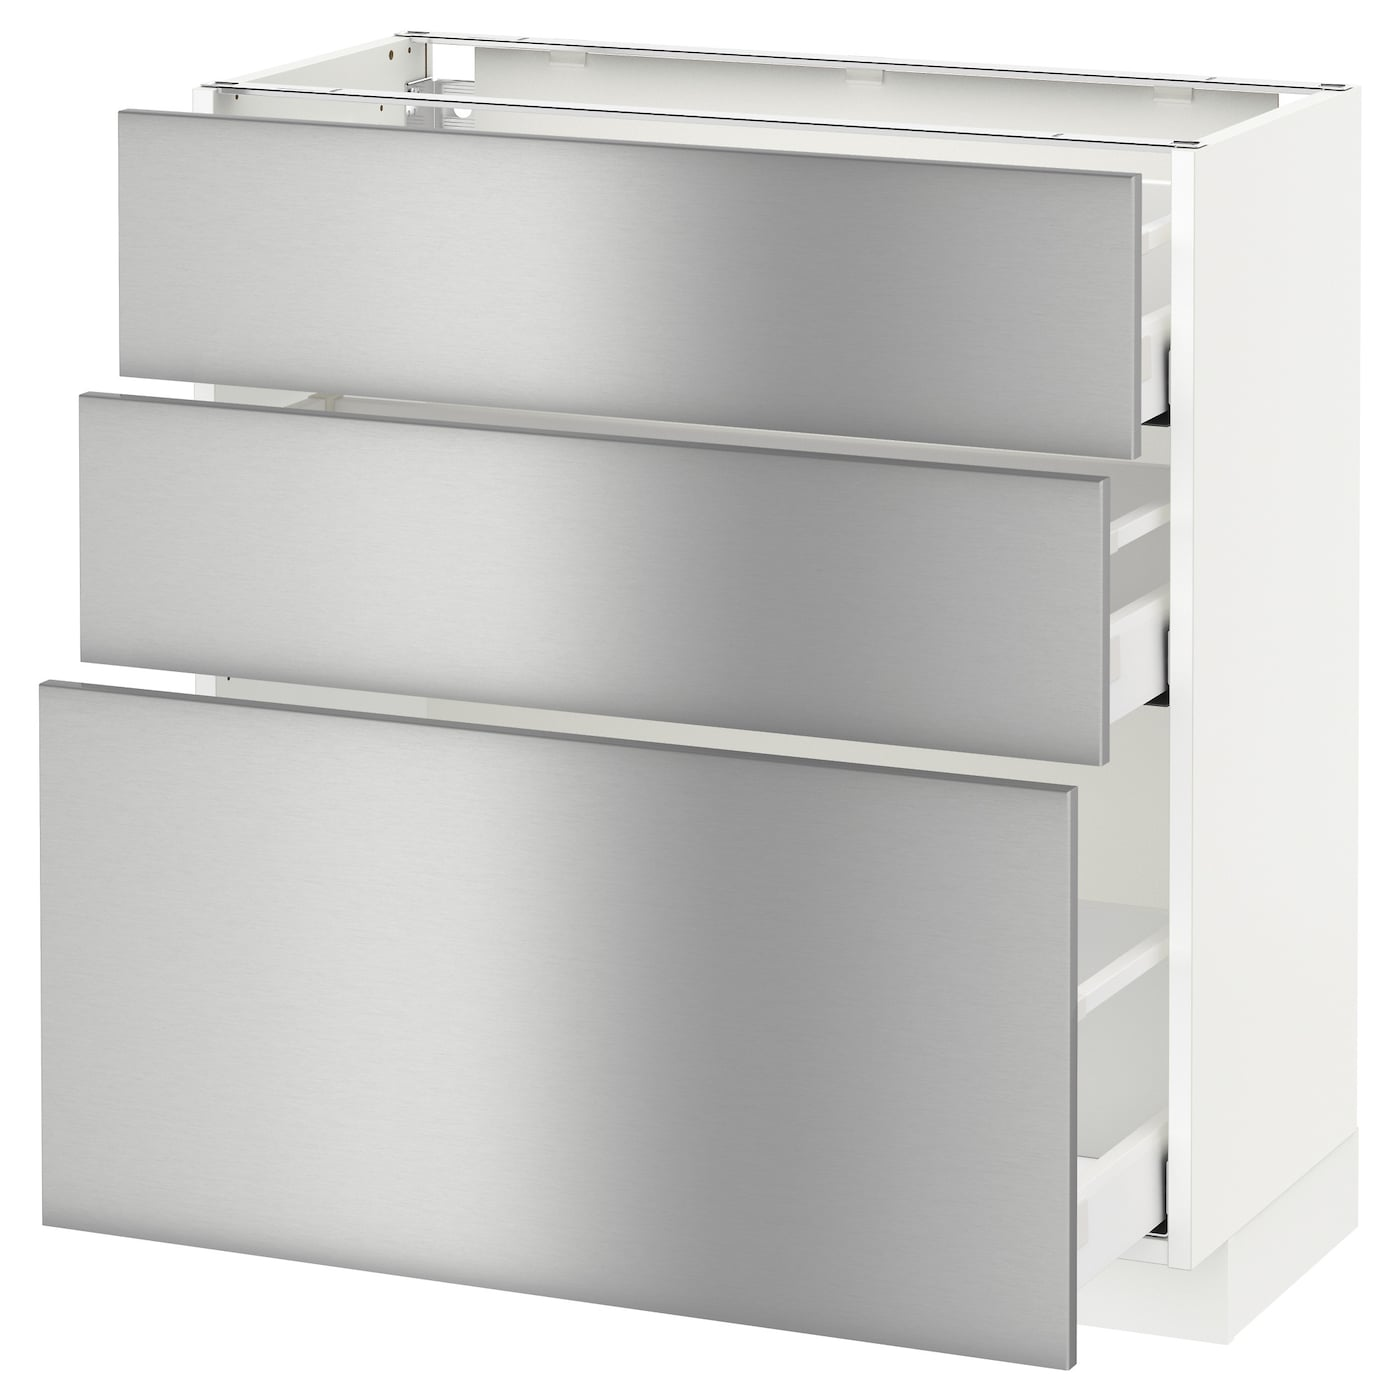 stainless steel kitchen base cabinets metod maximera base cabinet with 3 drawers white grevsta 8241